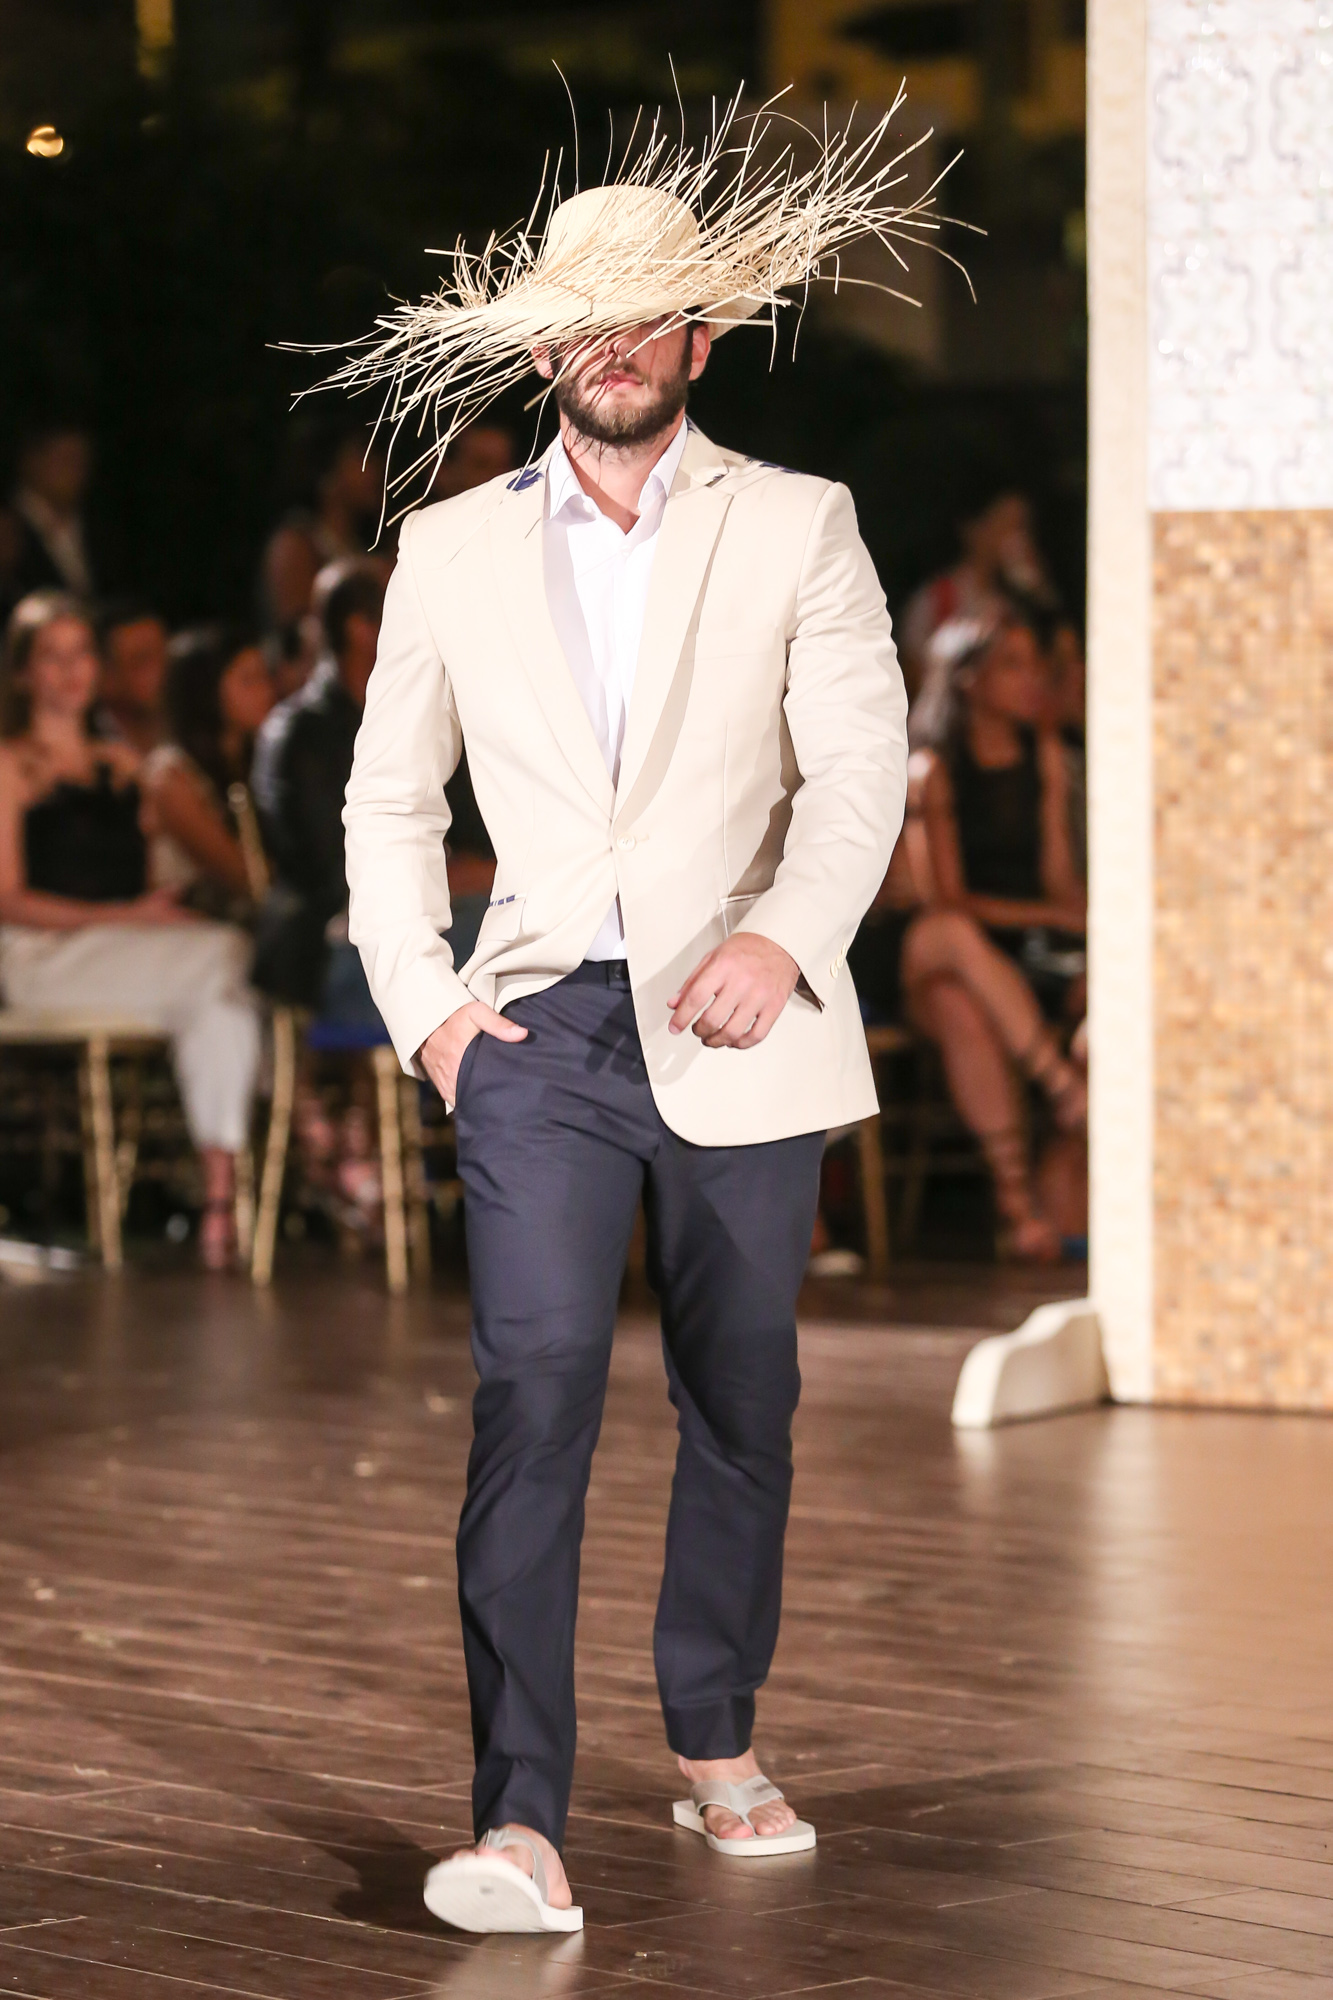 Jose-Jhan-Dominicana-Moda-Freddy-Cruz-2015-SS16-Sagaboi-Look-6